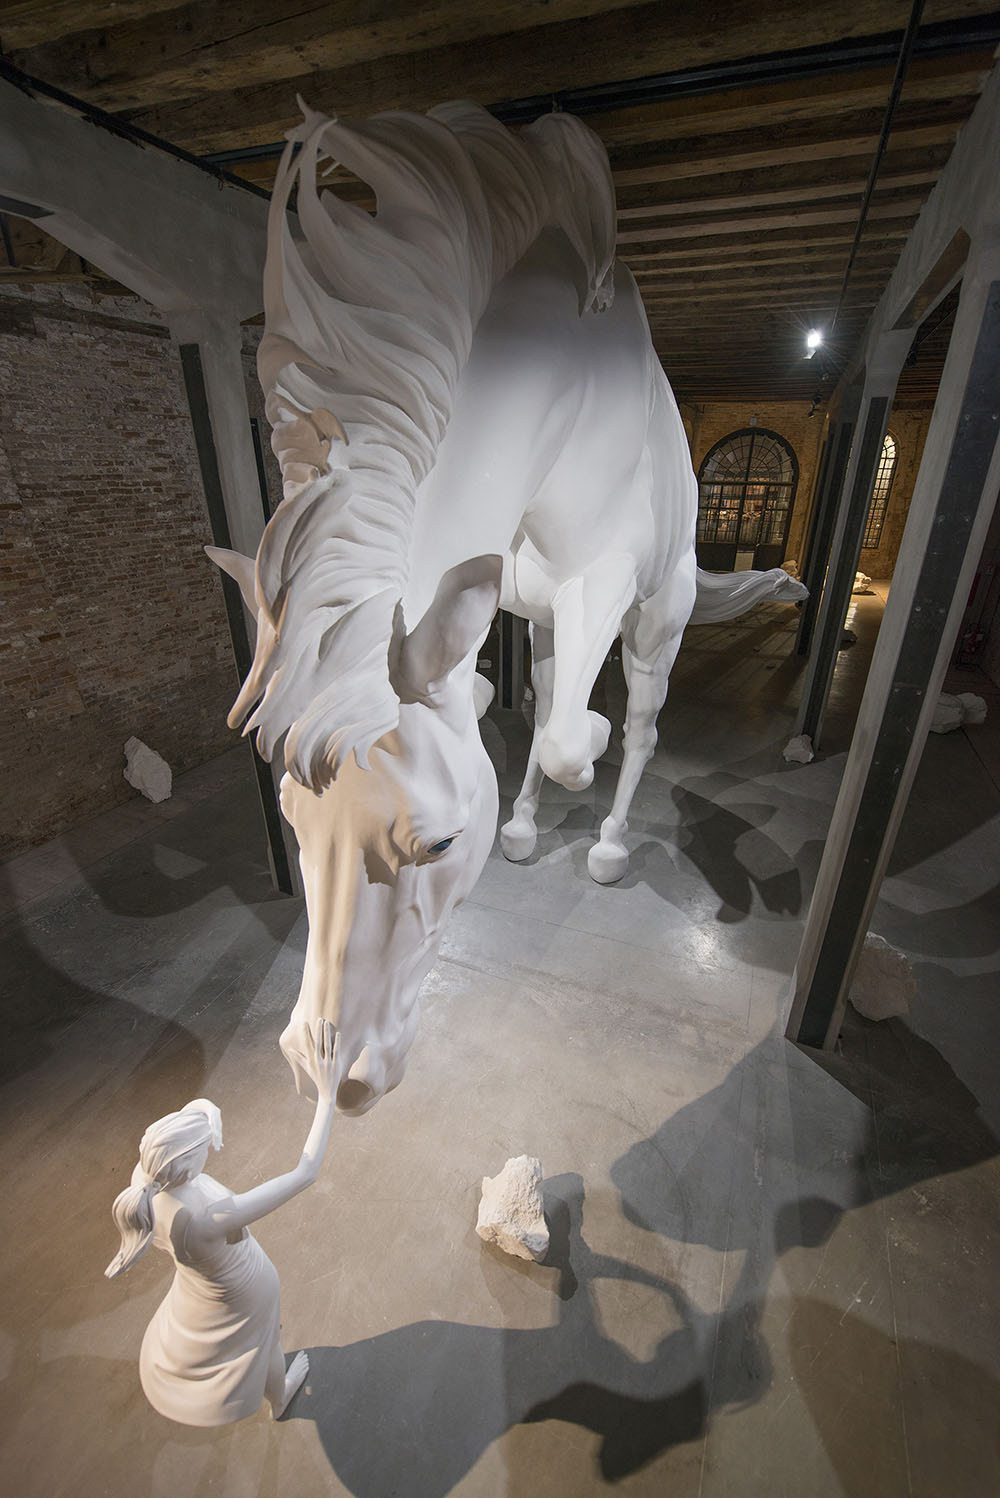 A Girl Encounters A Giant White Horse Frozen In Mid Air